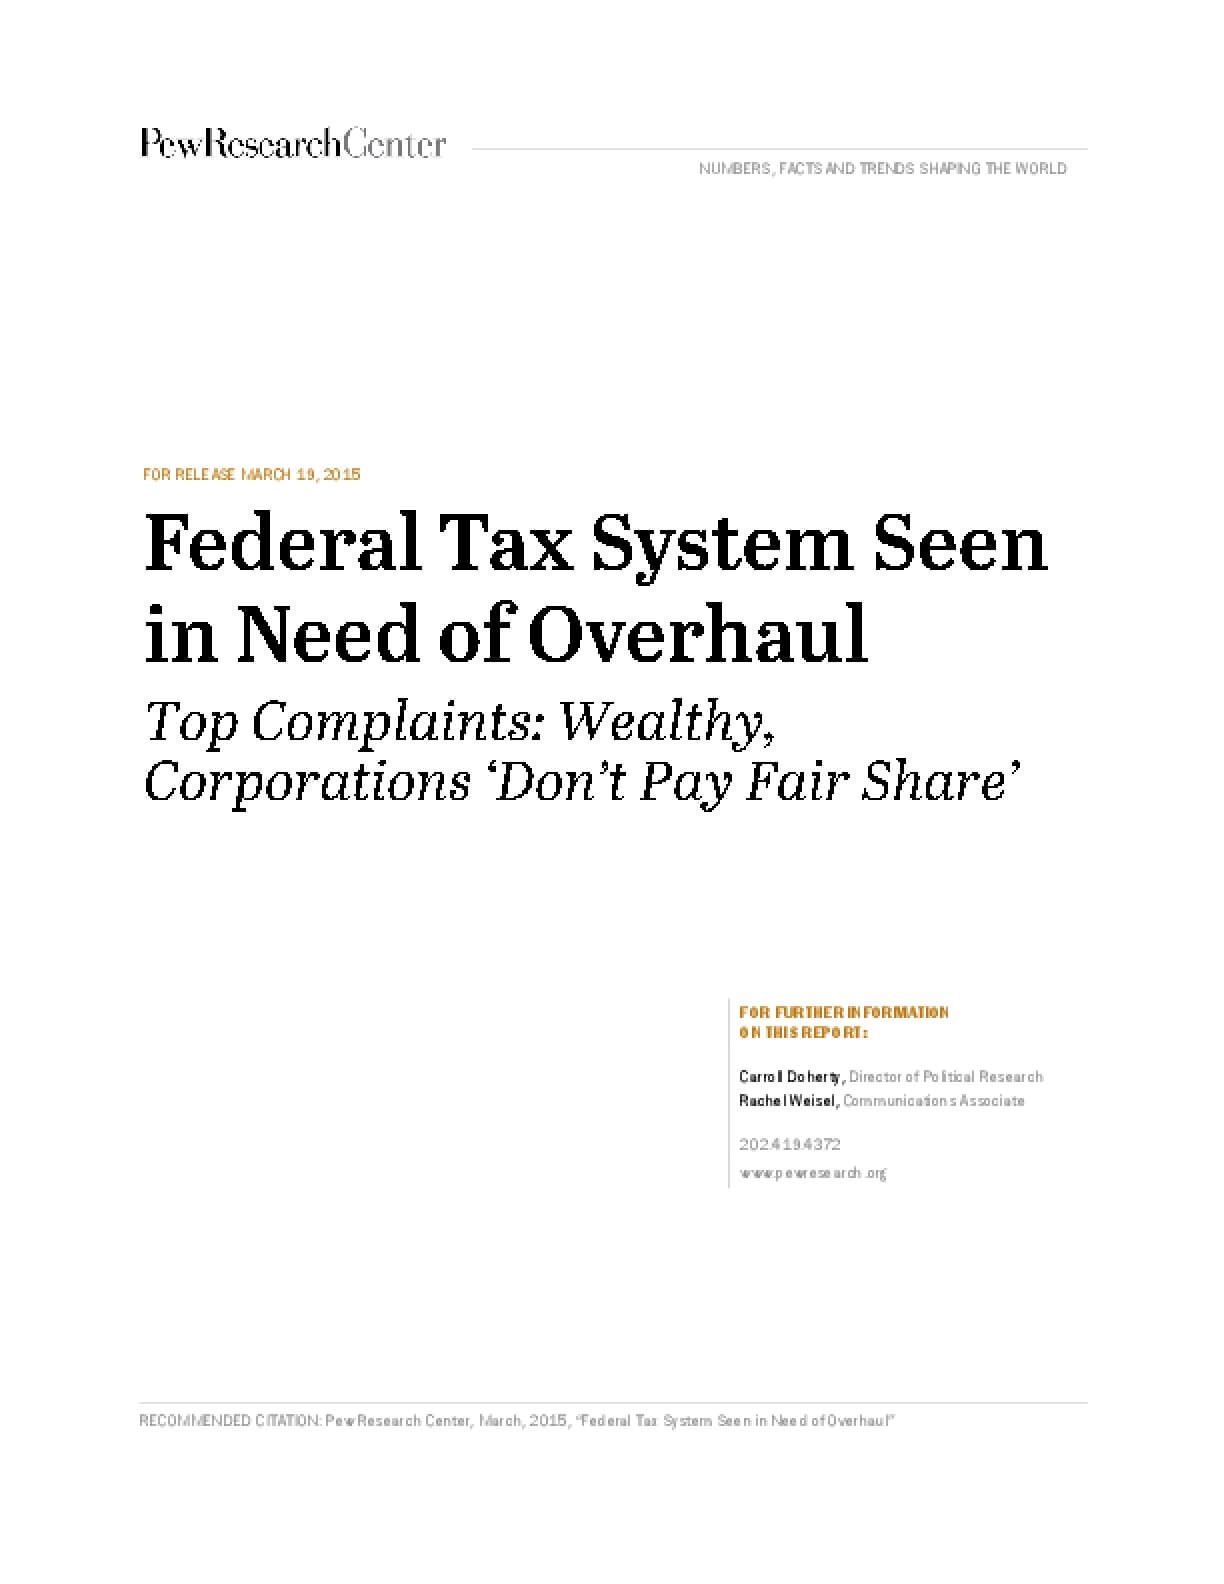 Federal Tax System Seen in Need of Overhaul: Top Complaints - Wealthy, Corporations 'Don't Pay Fair Share'